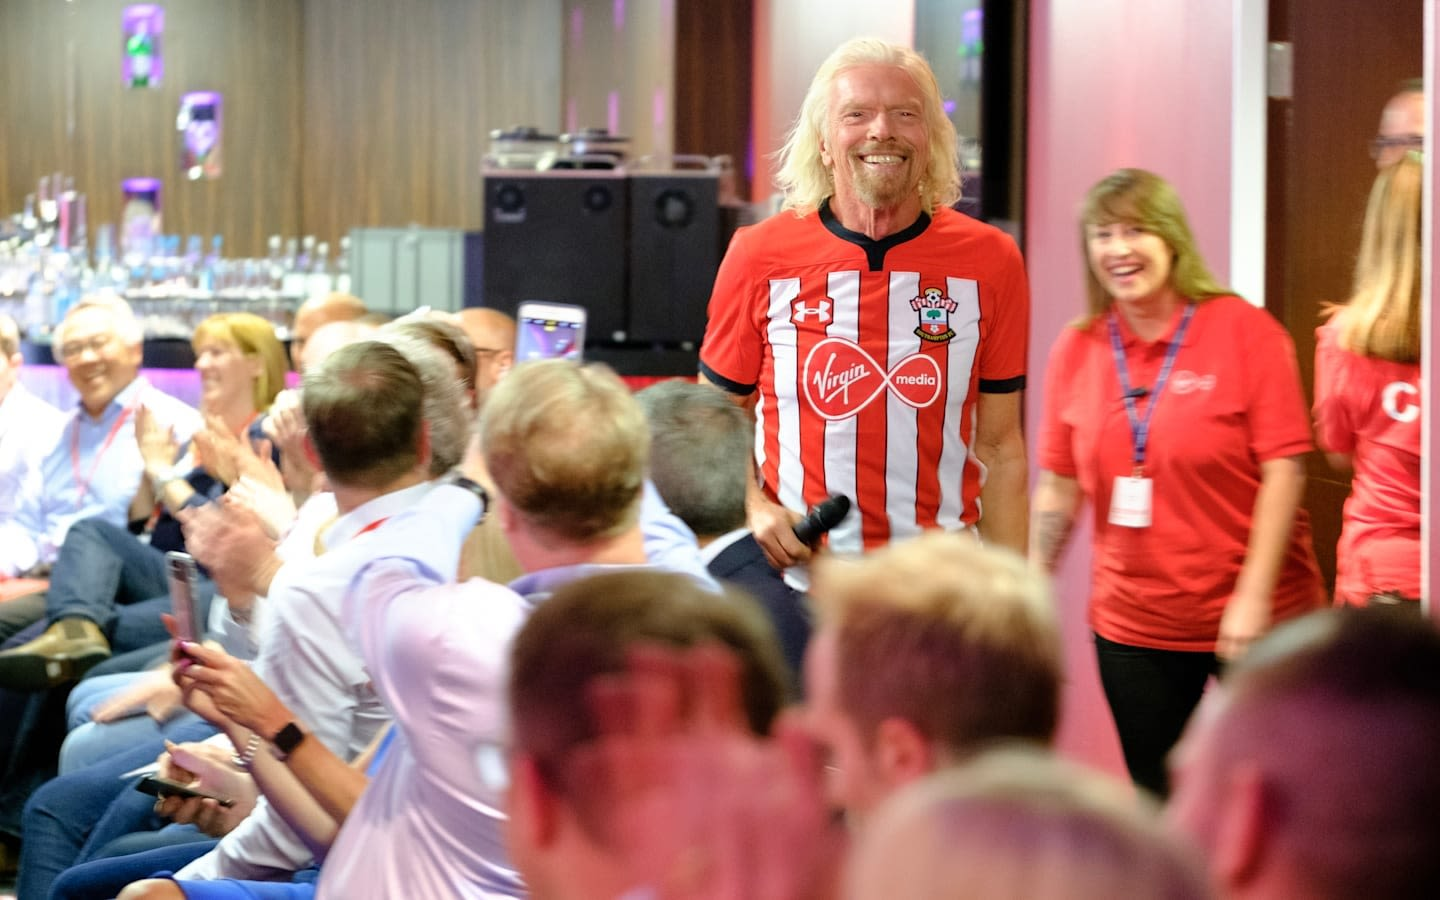 Richard Branson wearing a Southampton FC football shirt with the Virgin Media logo on